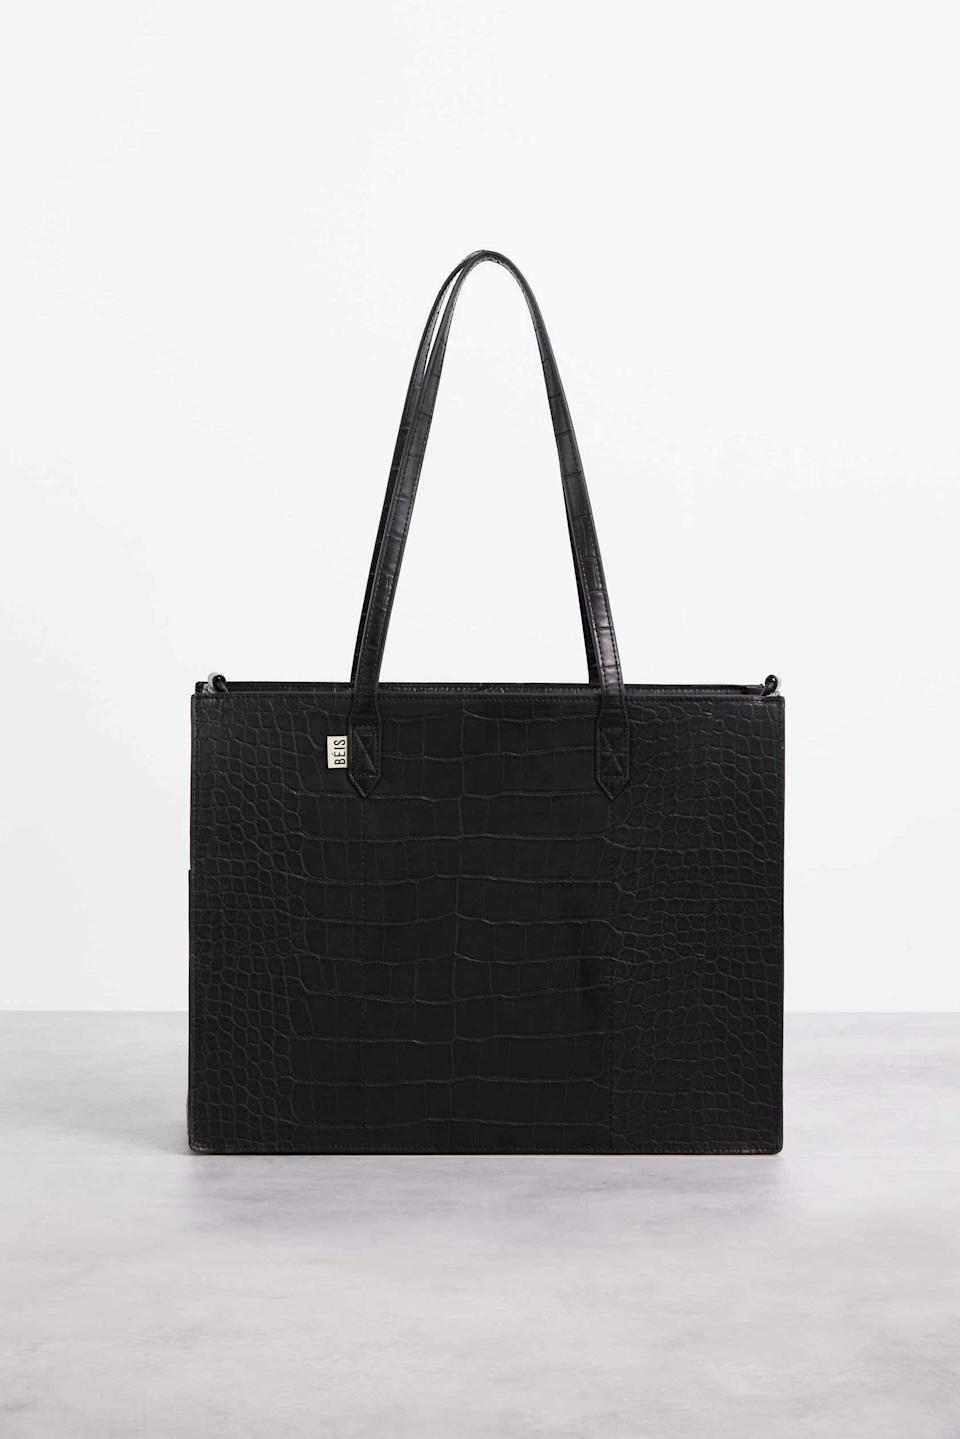 """<p><strong>Béis</strong></p><p>beistravel.com</p><p><strong>$108.00</strong></p><p><a href=""""https://beistravel.com/collections/all-products/products/the-mini-work-tote-in-black-croc"""" rel=""""nofollow noopener"""" target=""""_blank"""" data-ylk=""""slk:Shop Now"""" class=""""link rapid-noclick-resp"""">Shop Now</a></p><p>A new work tote for their new office. May they never find a work wife as cool as you (heh). </p>"""